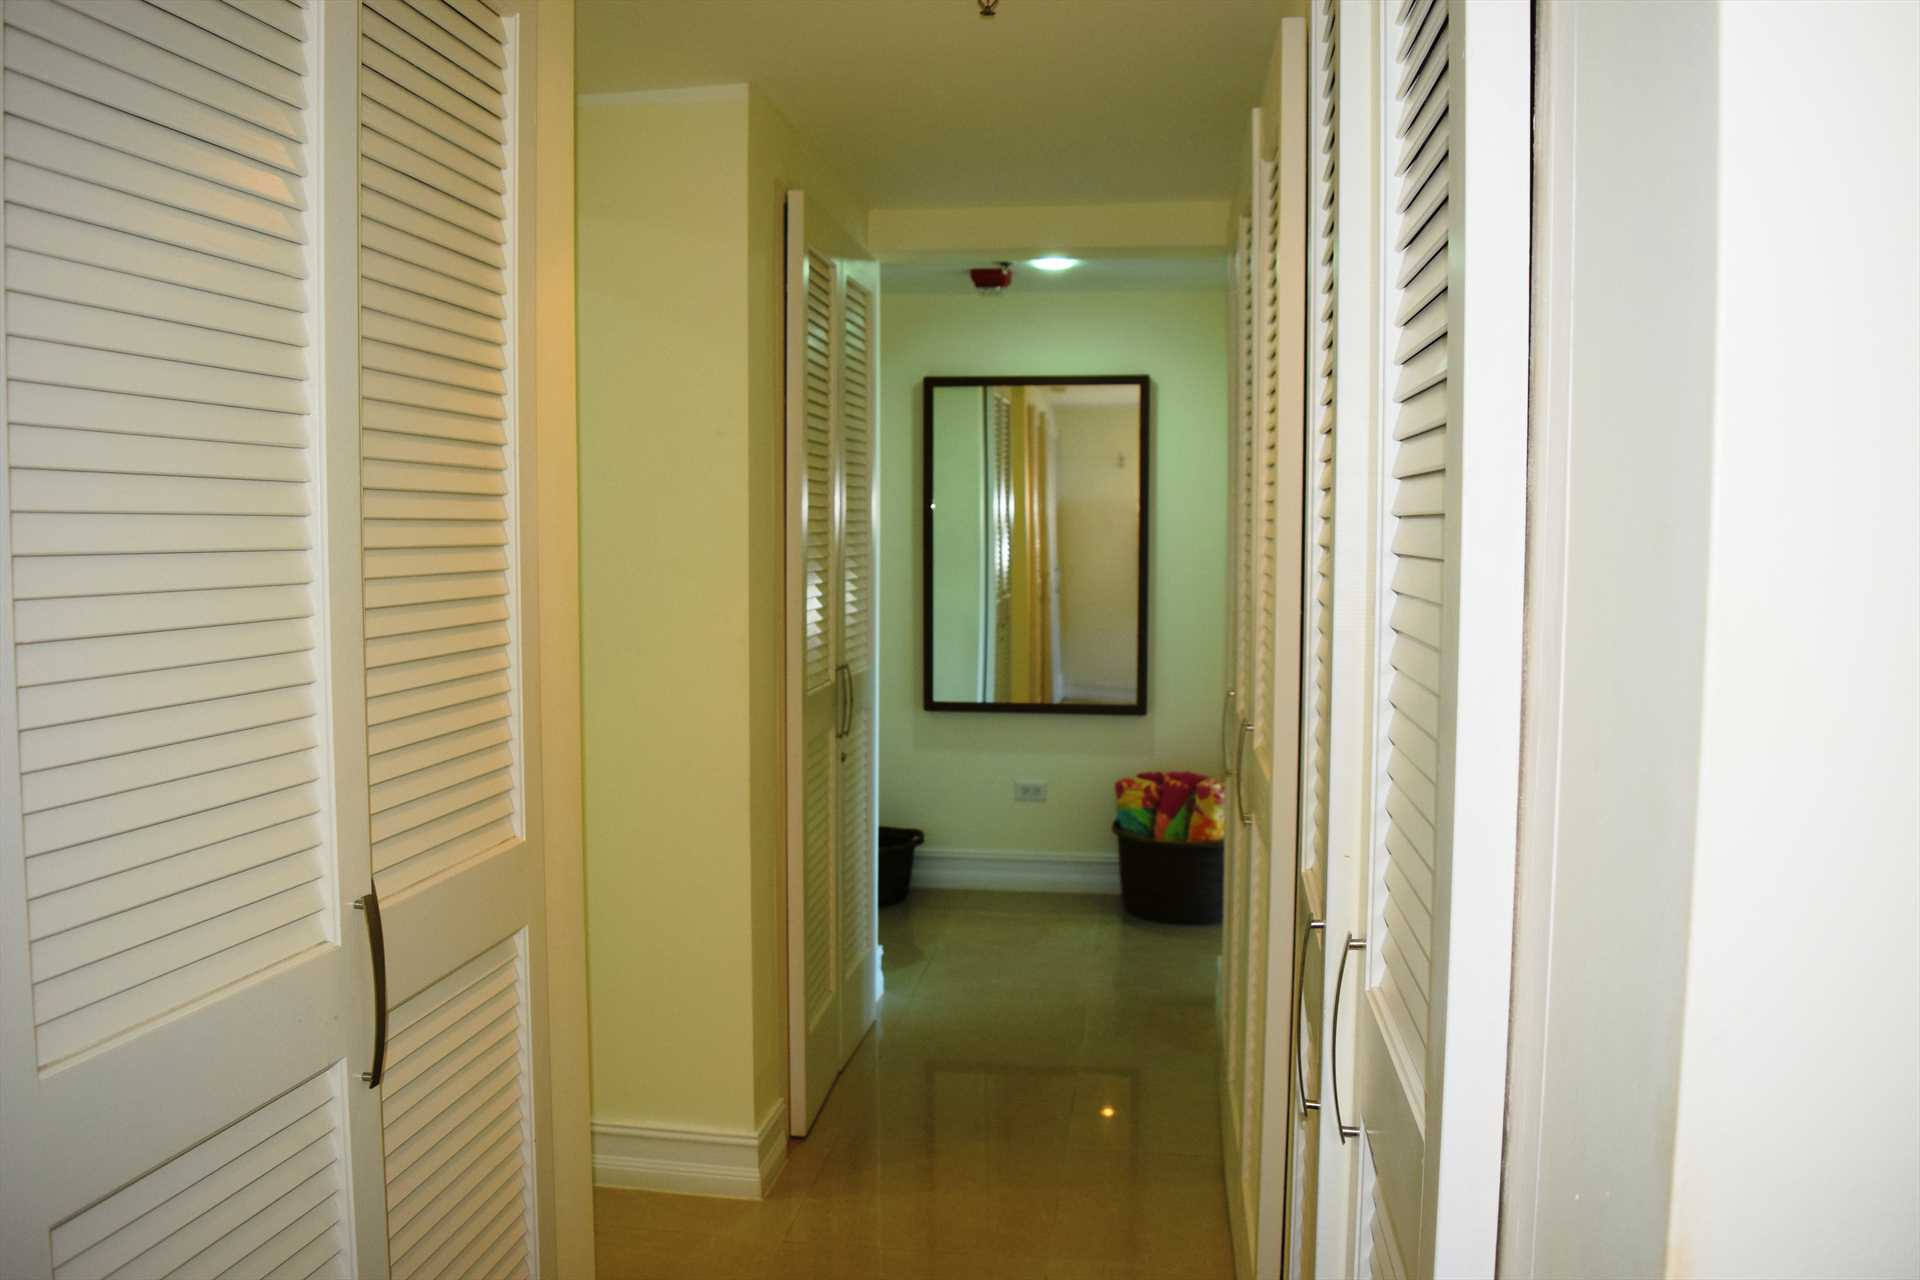 Corridor that lends access to bedrooms, bathrooms and laundry facilities